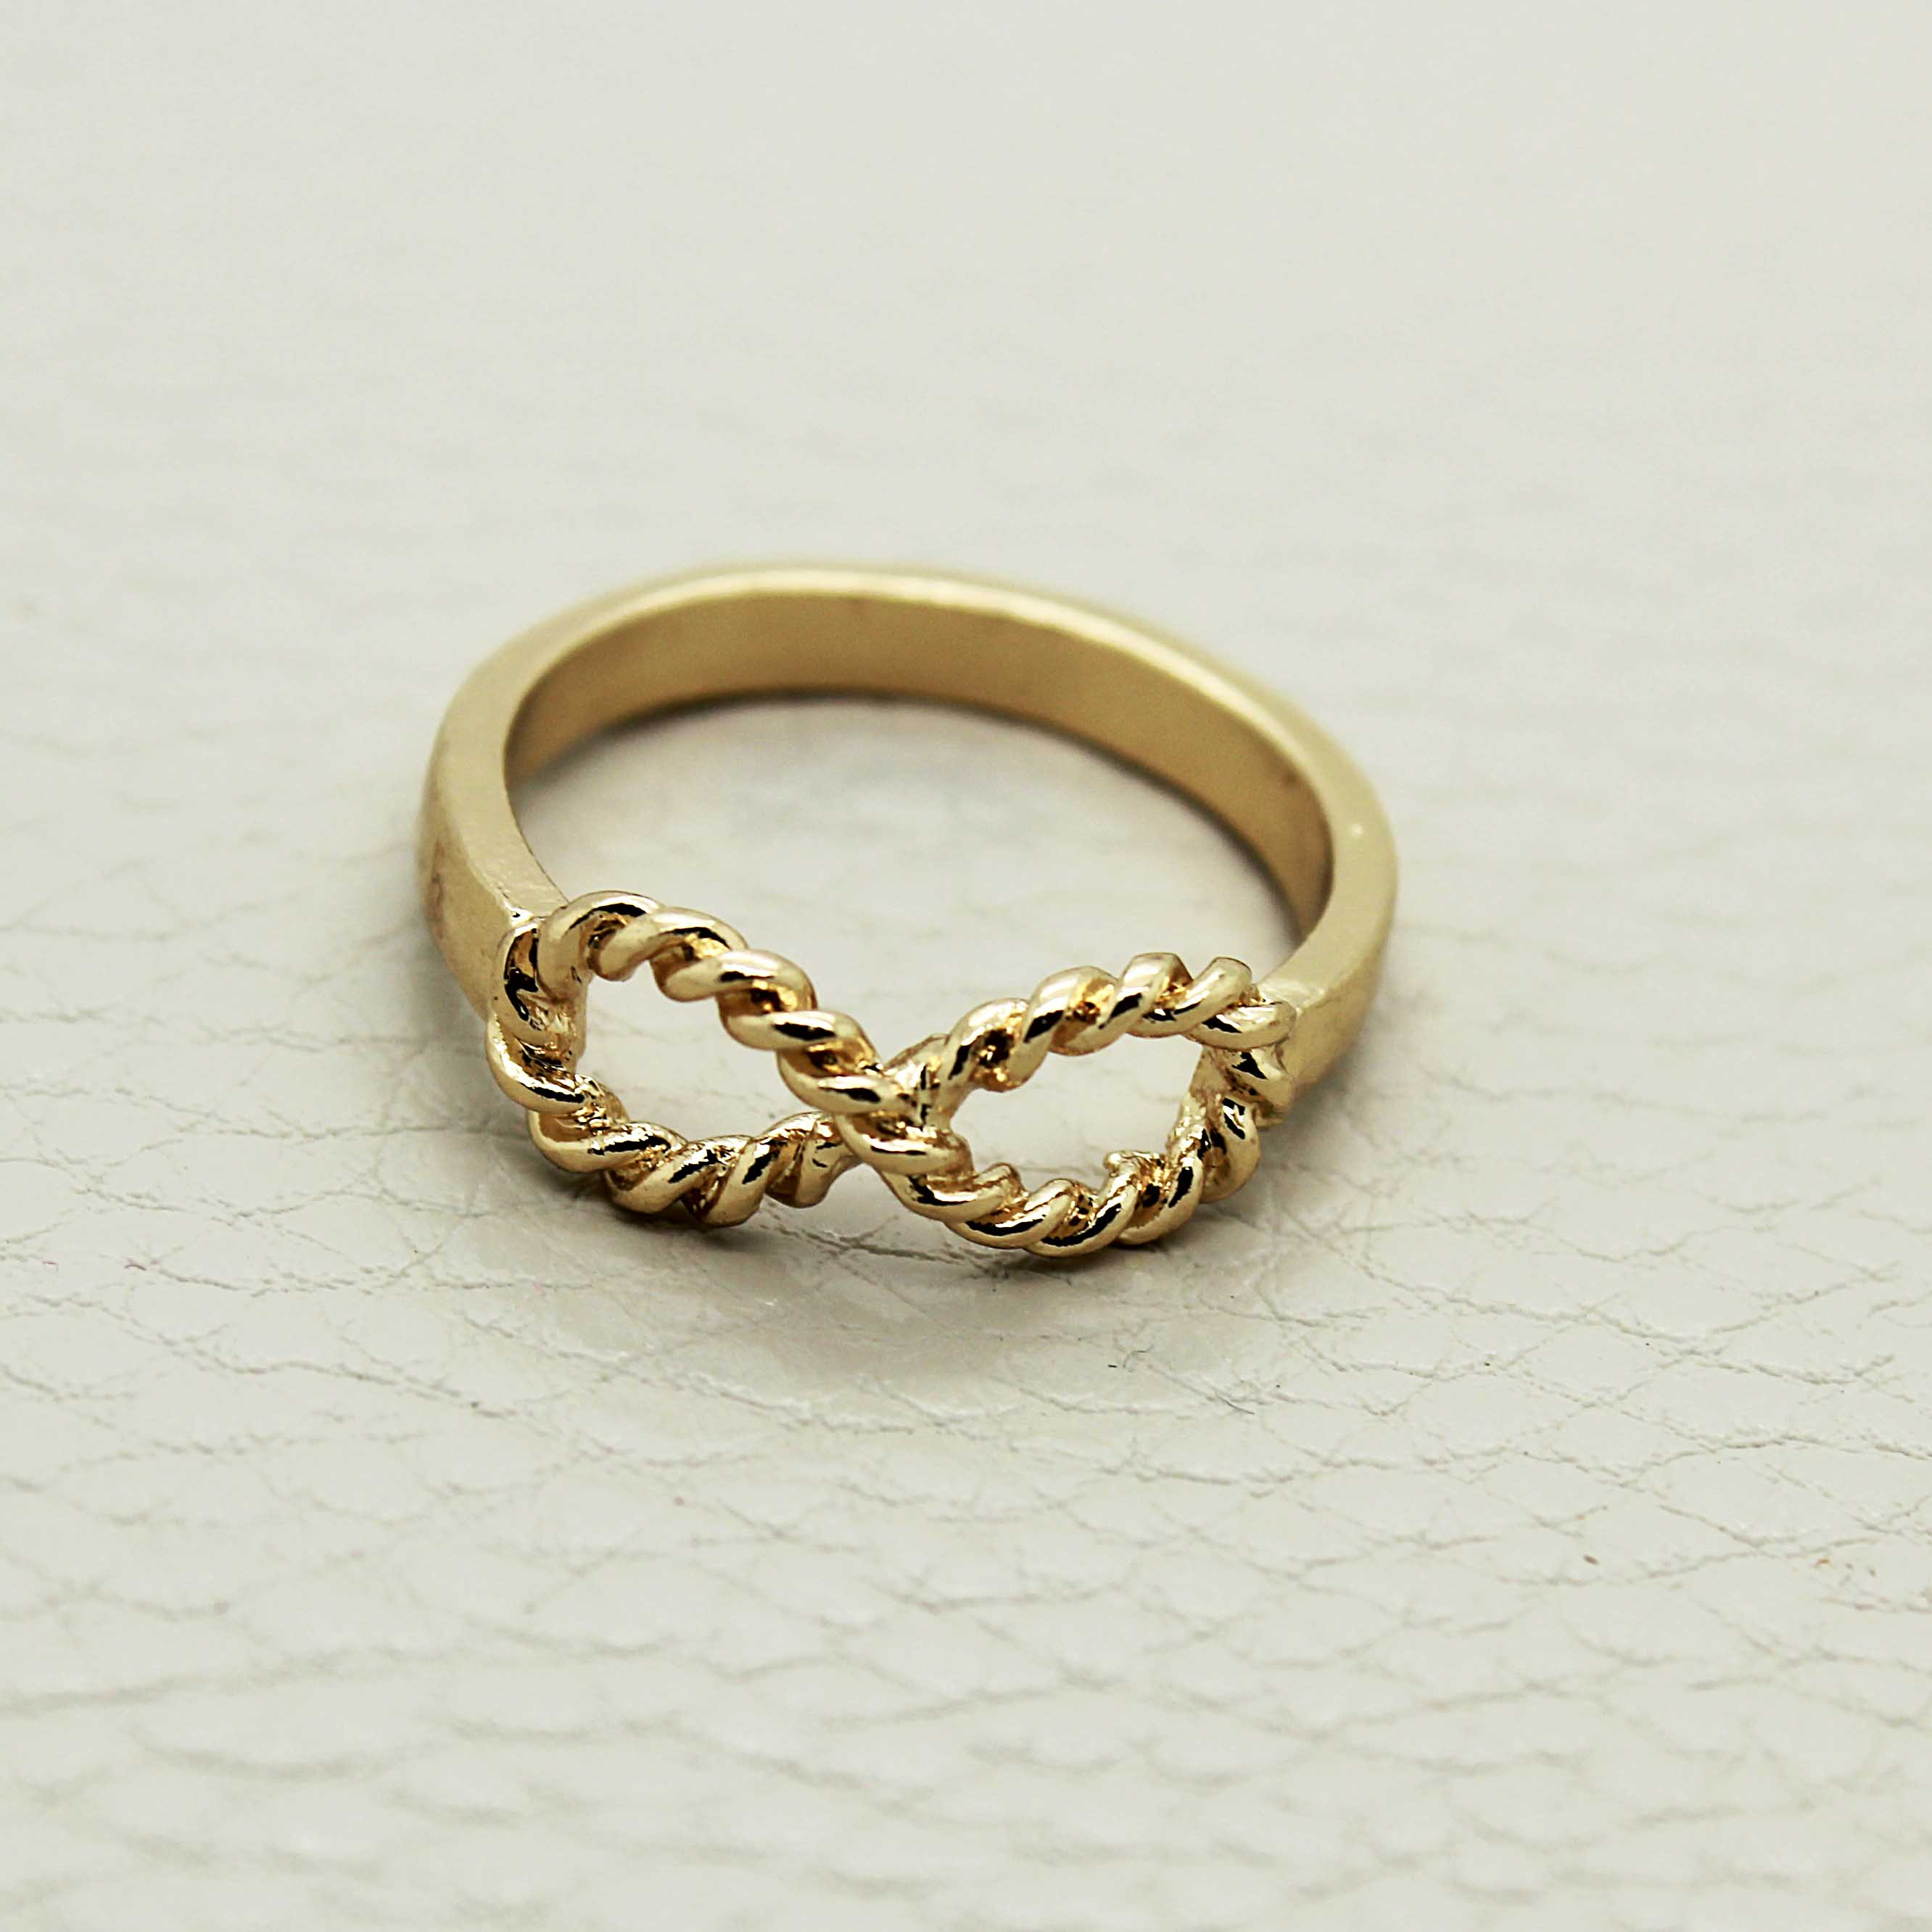 Infinity mini ring one pcs price qd tkl006 for Infinity ring jewelry store